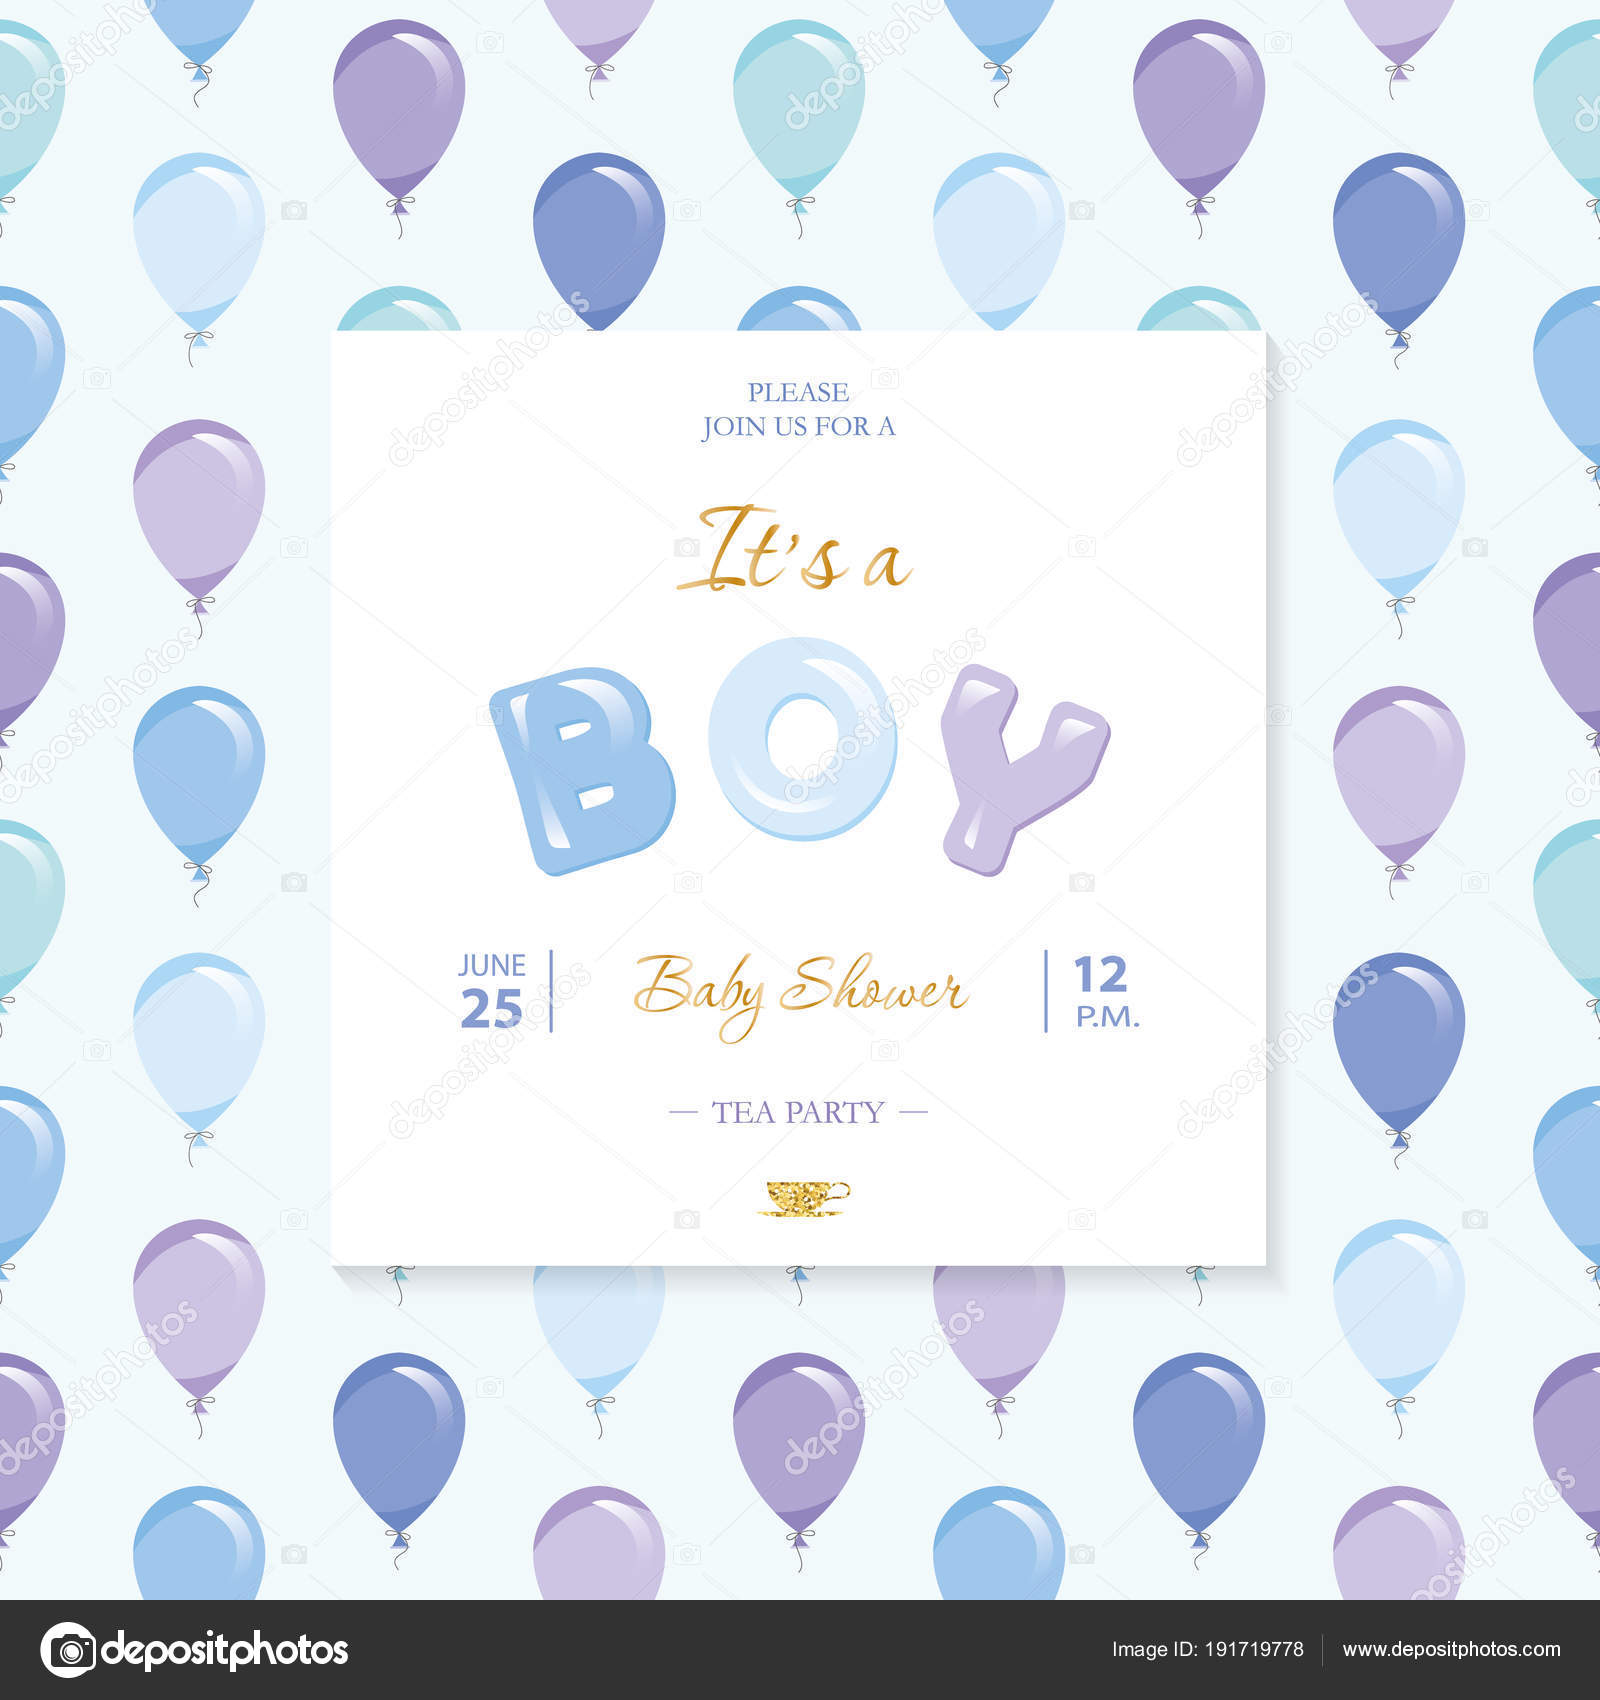 it s a boy baby shower template included seamless pattern with